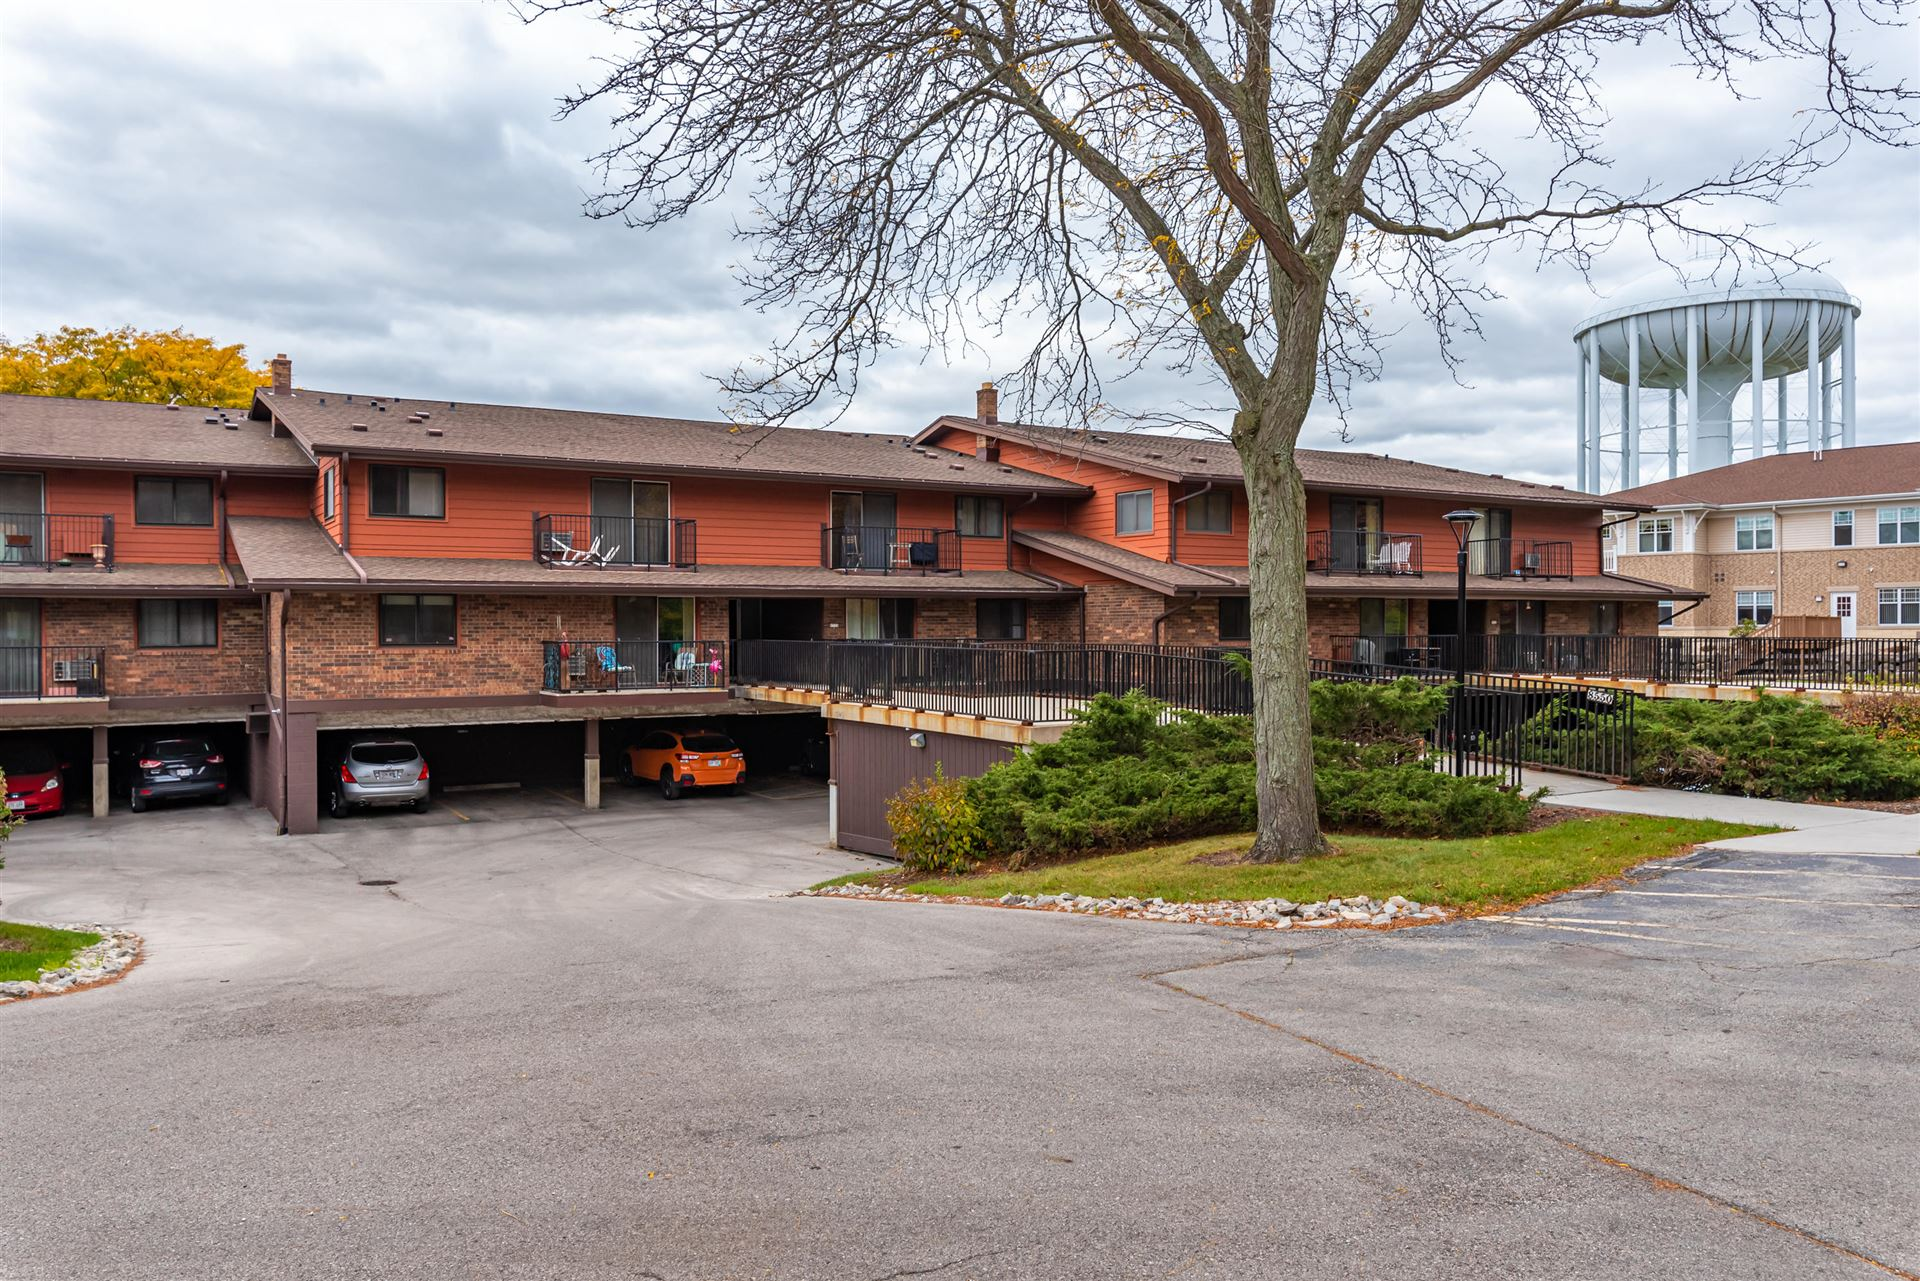 8550 W Waterford Ave #3, Greenfield, WI 53228 - #: 1715020